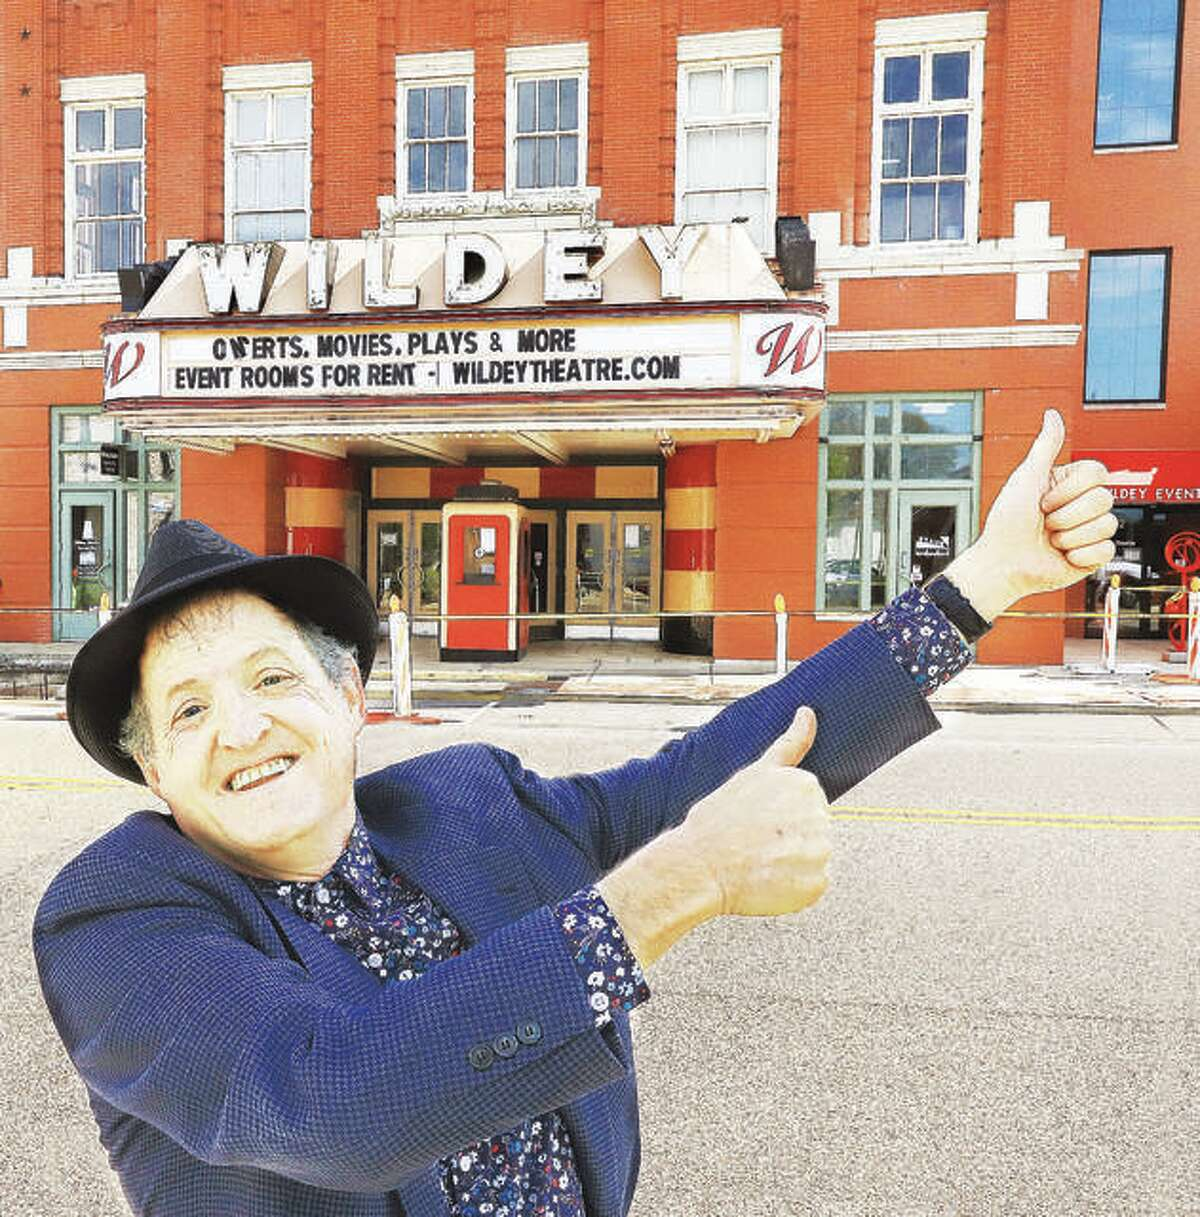 Wildey Theatre manager Al Canal will host two movies at the venue this month, with attendance limited to 50 people.